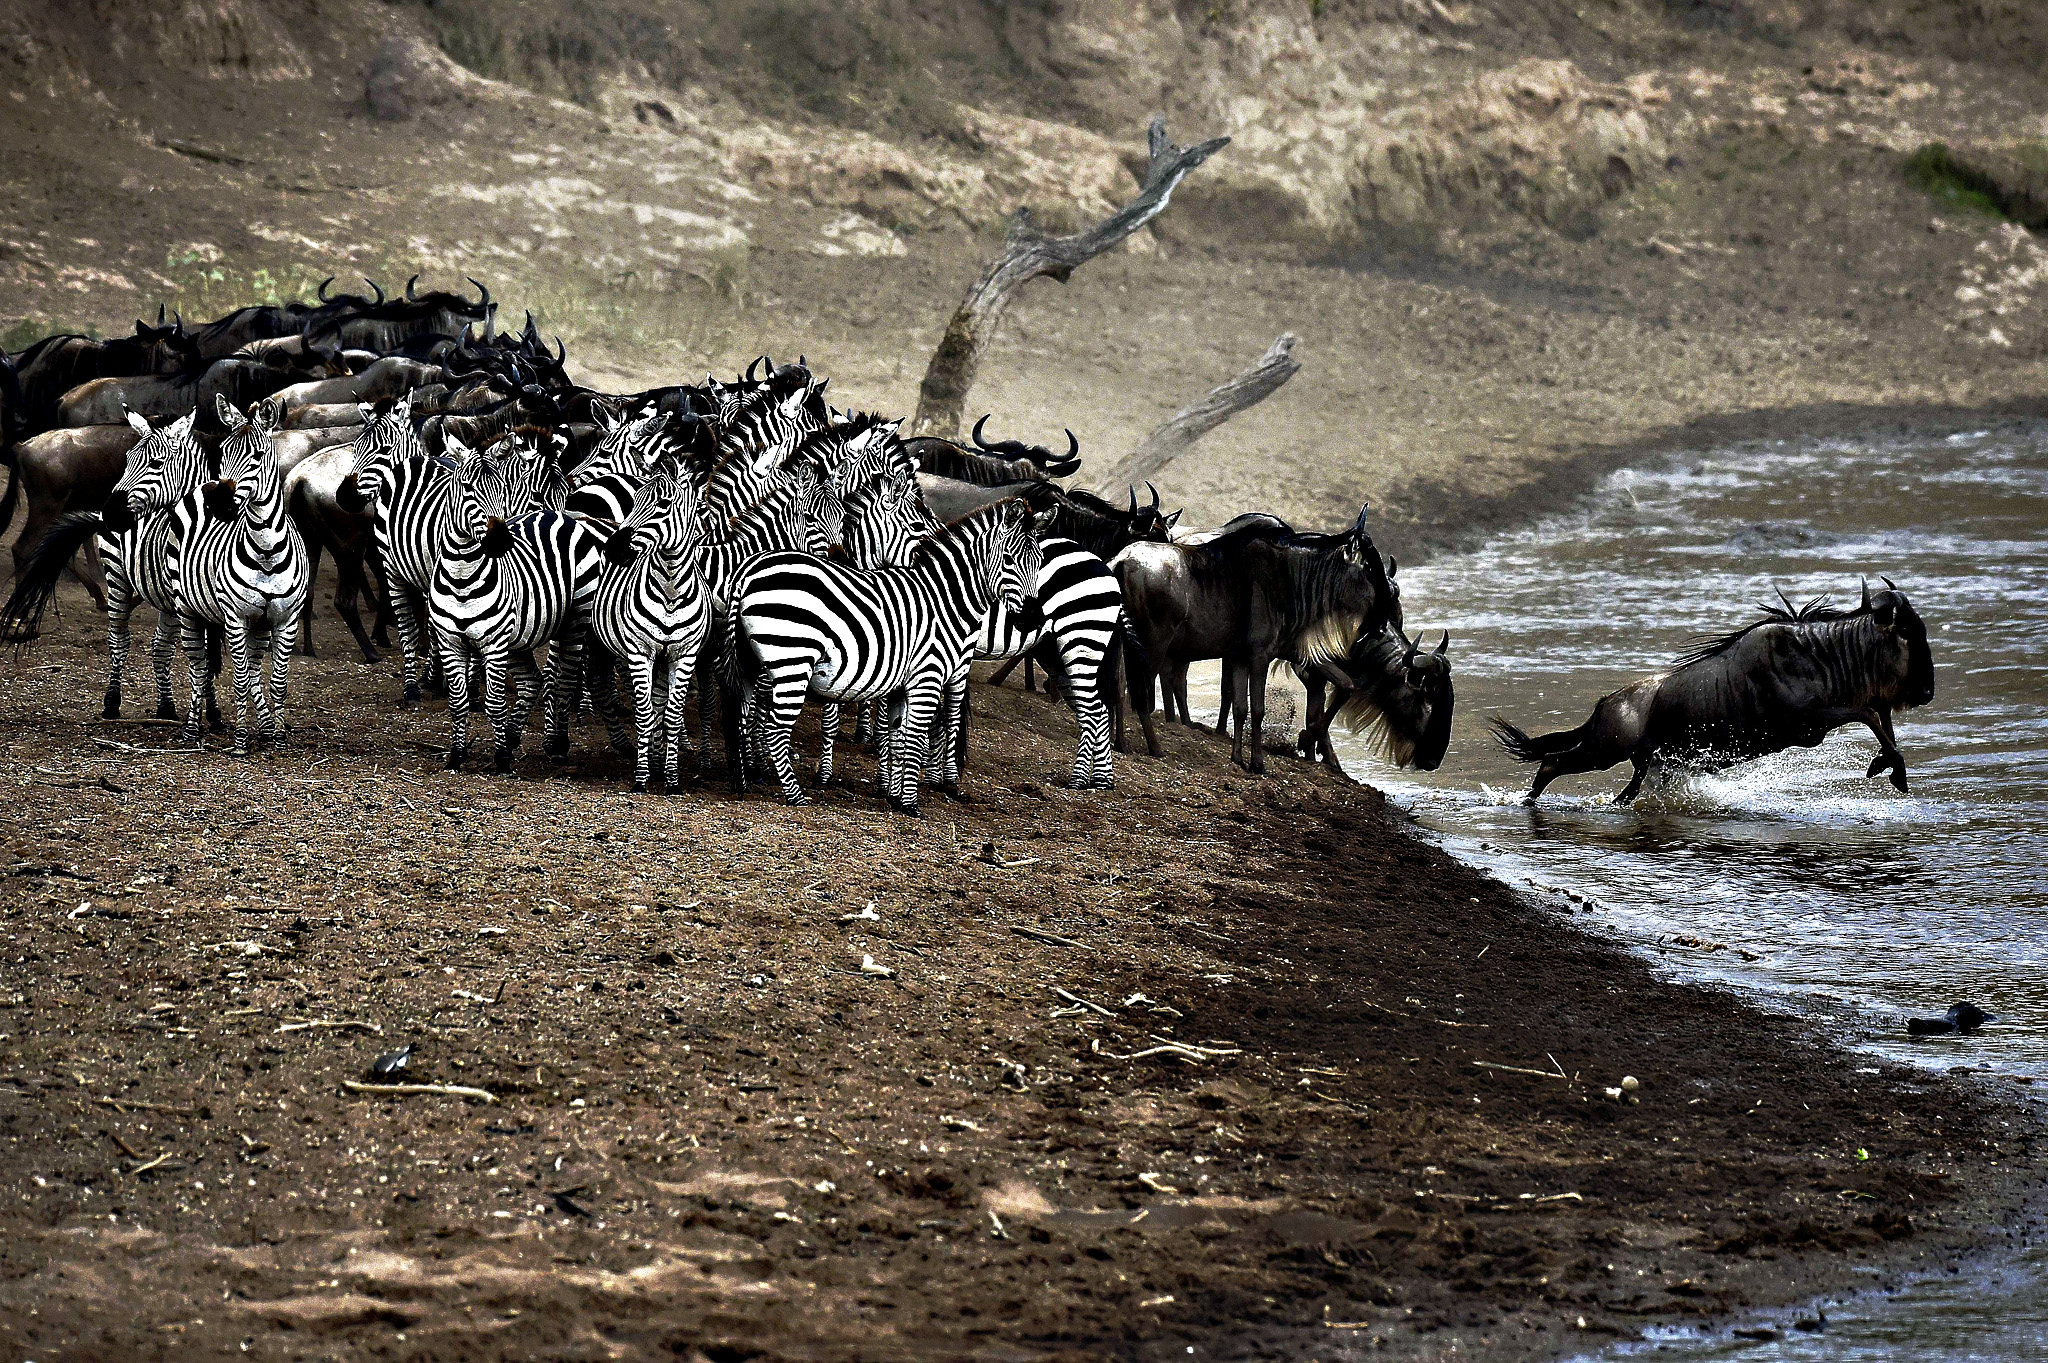 Wildebeests and zebras at a river in Masai Mara on Wednesday. Every year, hundreds of thousands wildebeests migrate from the Serengeti to Masai Mara game reserve to graze